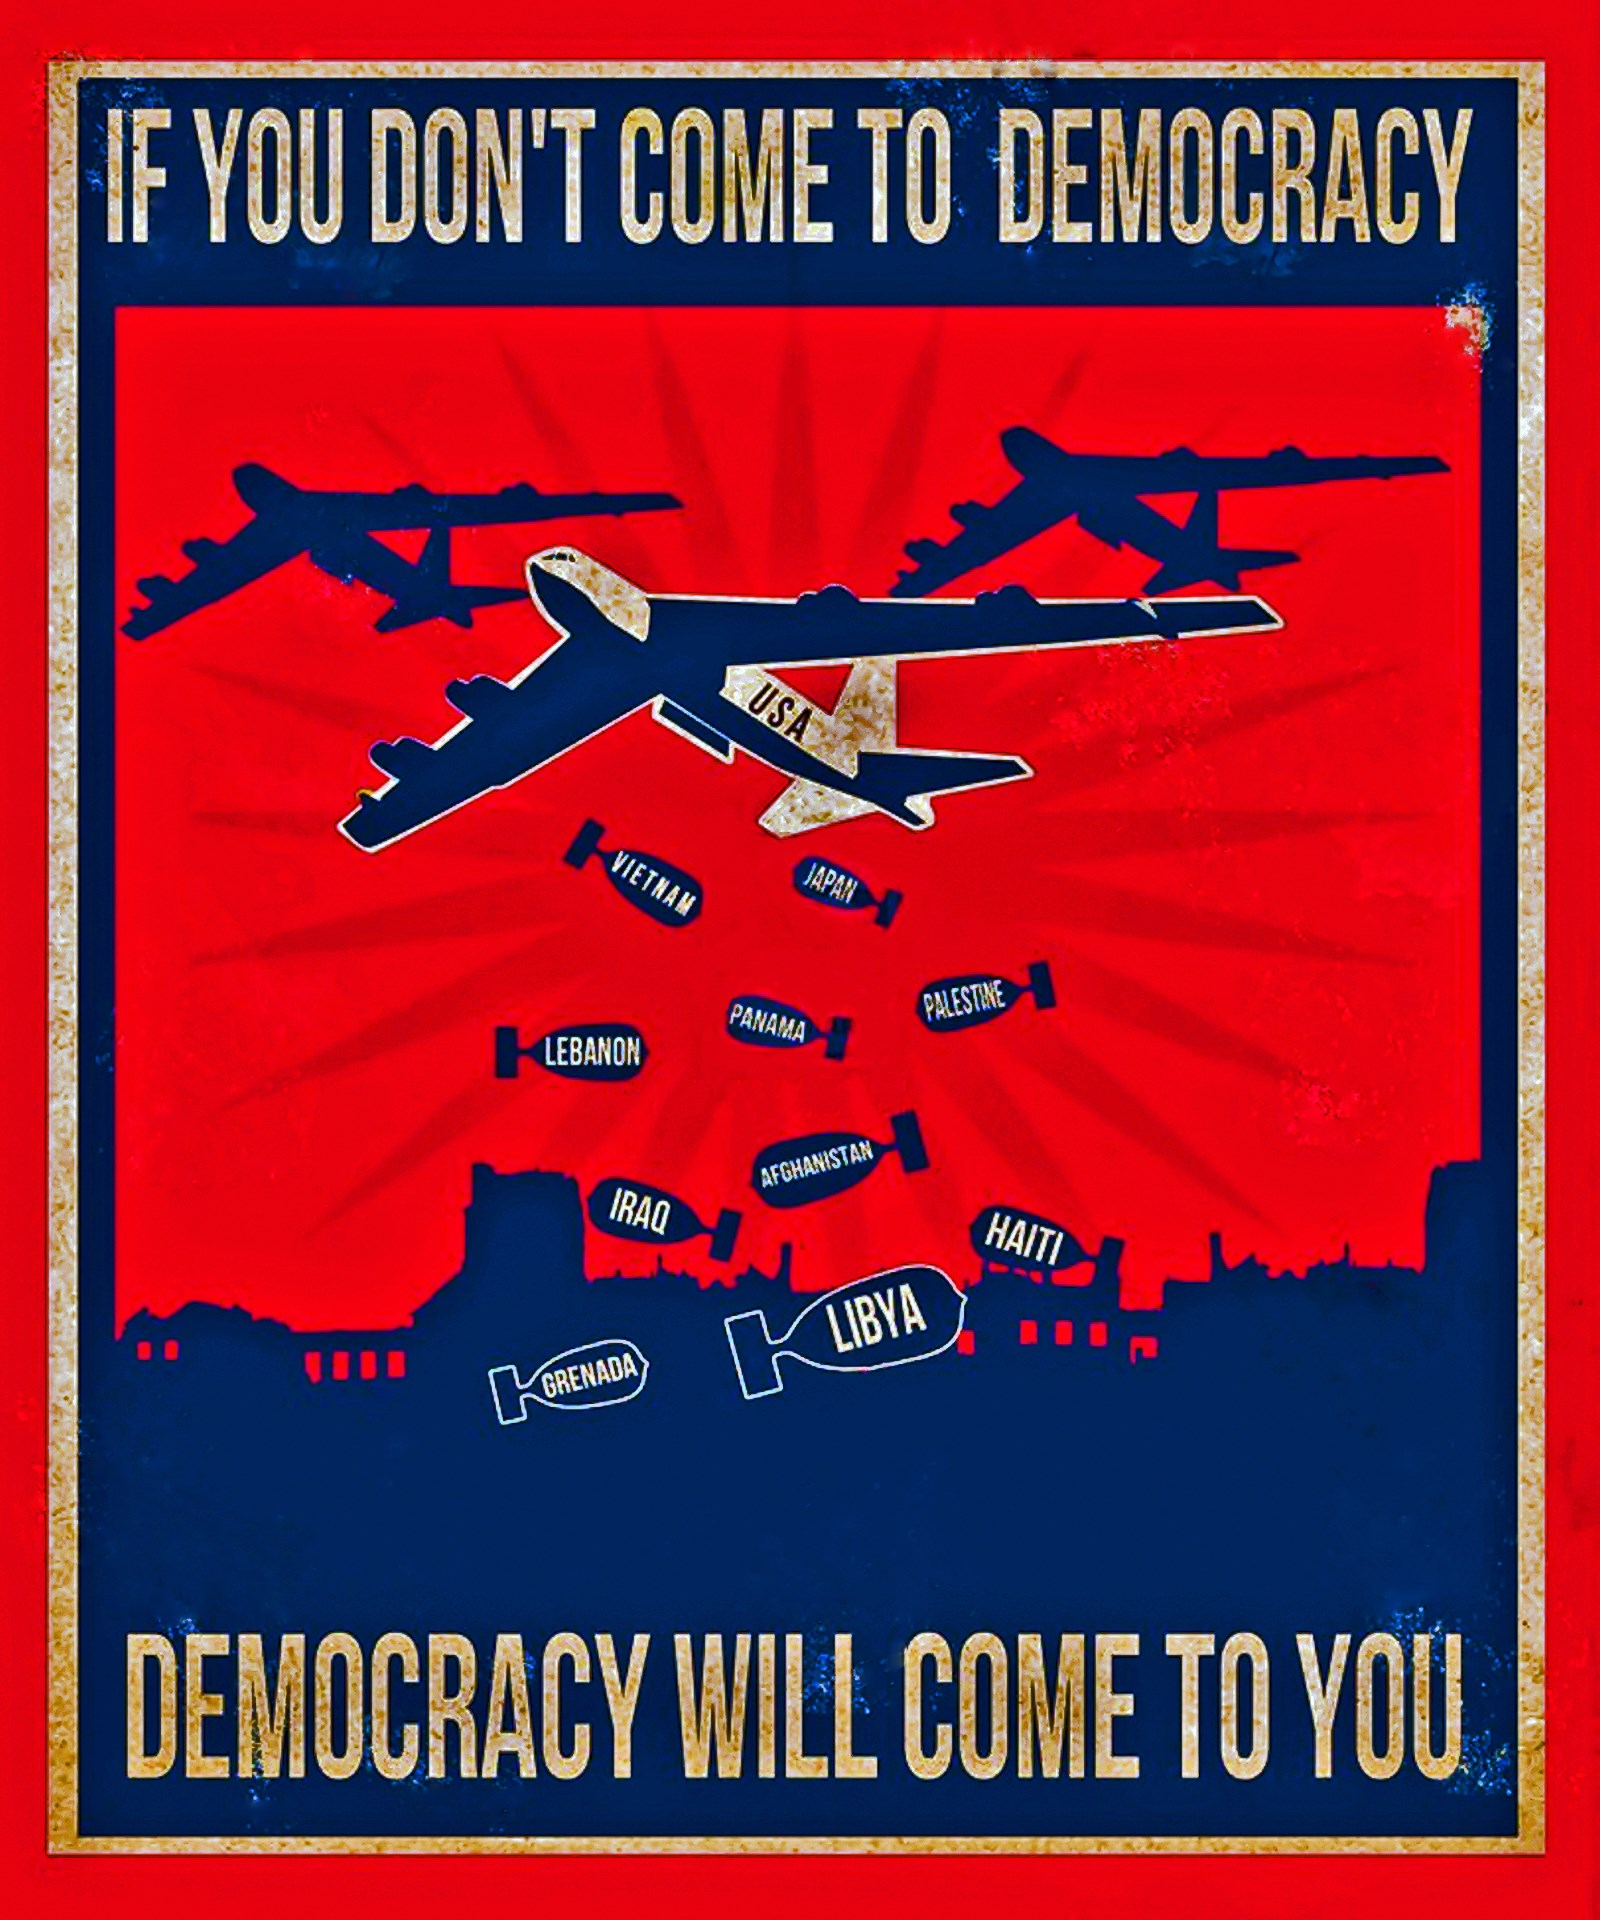 00 Democracy Will Come to You 01. 04.05.15